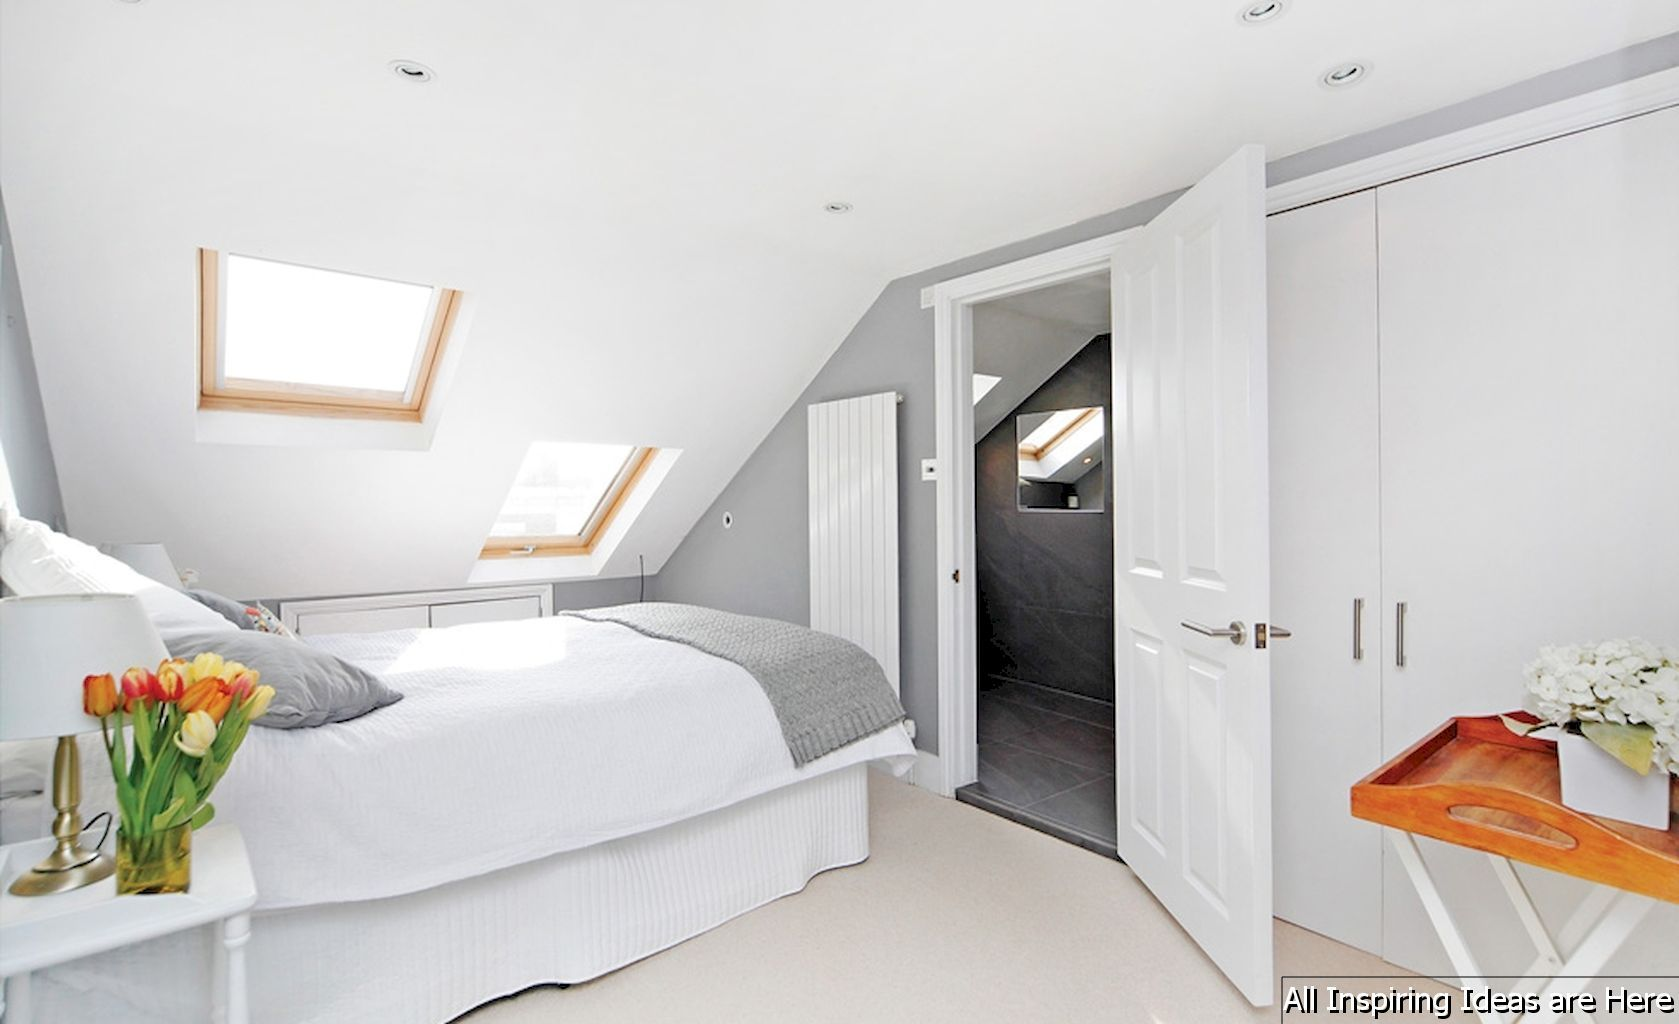 Loft bedroom images   Awesome Small Loft Bedroom Ideas  Small loft bedroom Small loft